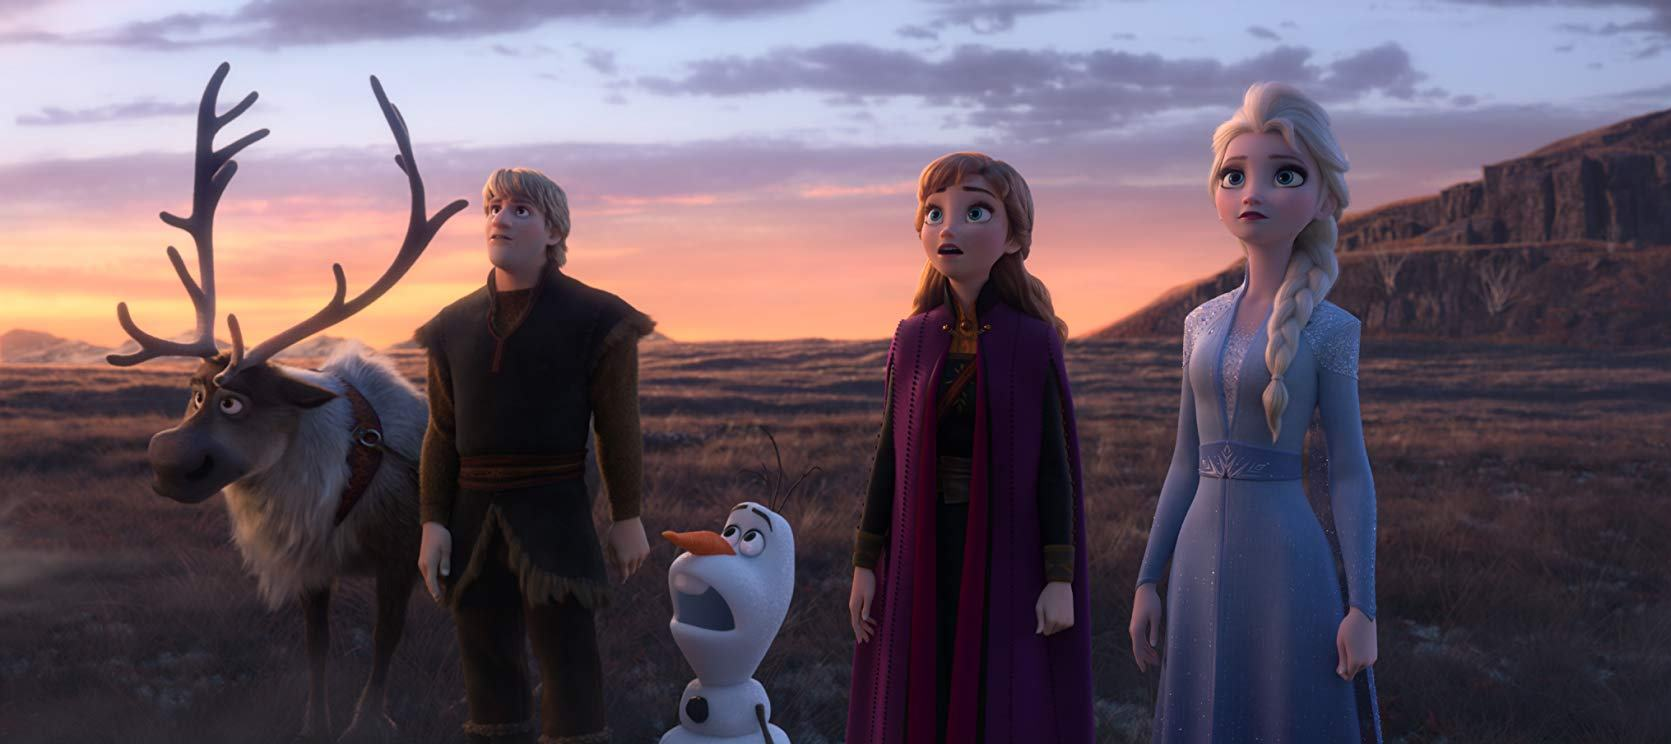 Sven the reindeer, Kristoff (voiced by Jonathan Groff), Olaf (voiced by Josh Gad), Anna (voiced by Kristen Bell) and Elsa (voiced by Idina Menzel) in Frozen II (2019)